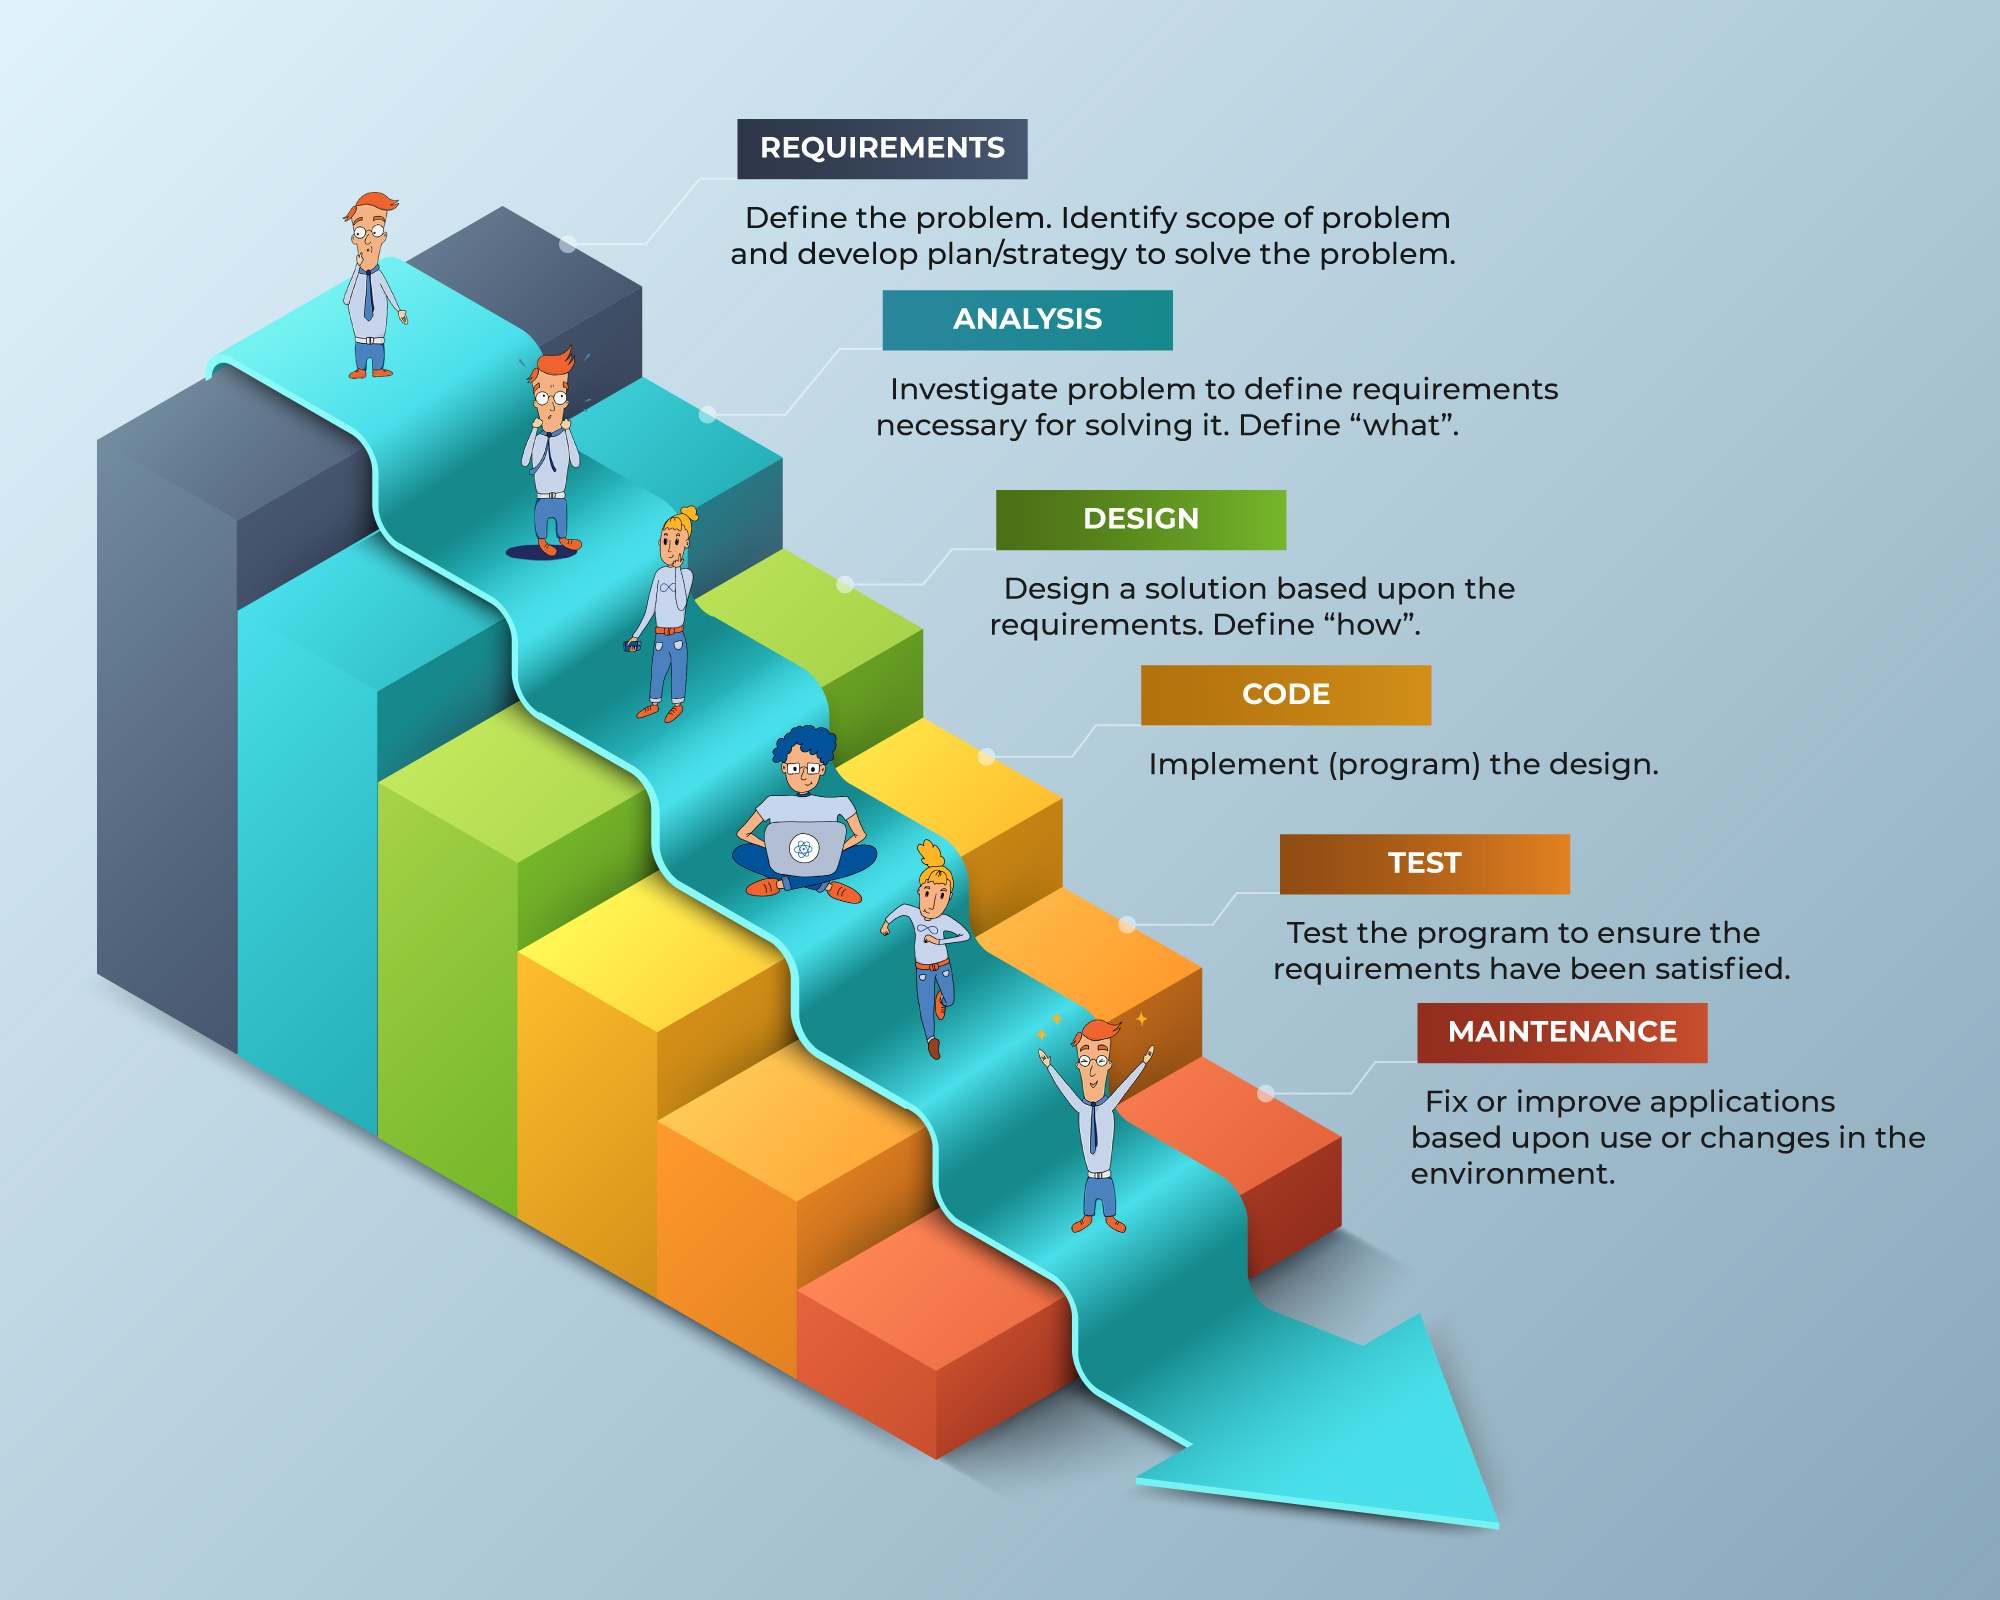 Waterfall methodology infographic showing software development model's linear life cycle phases